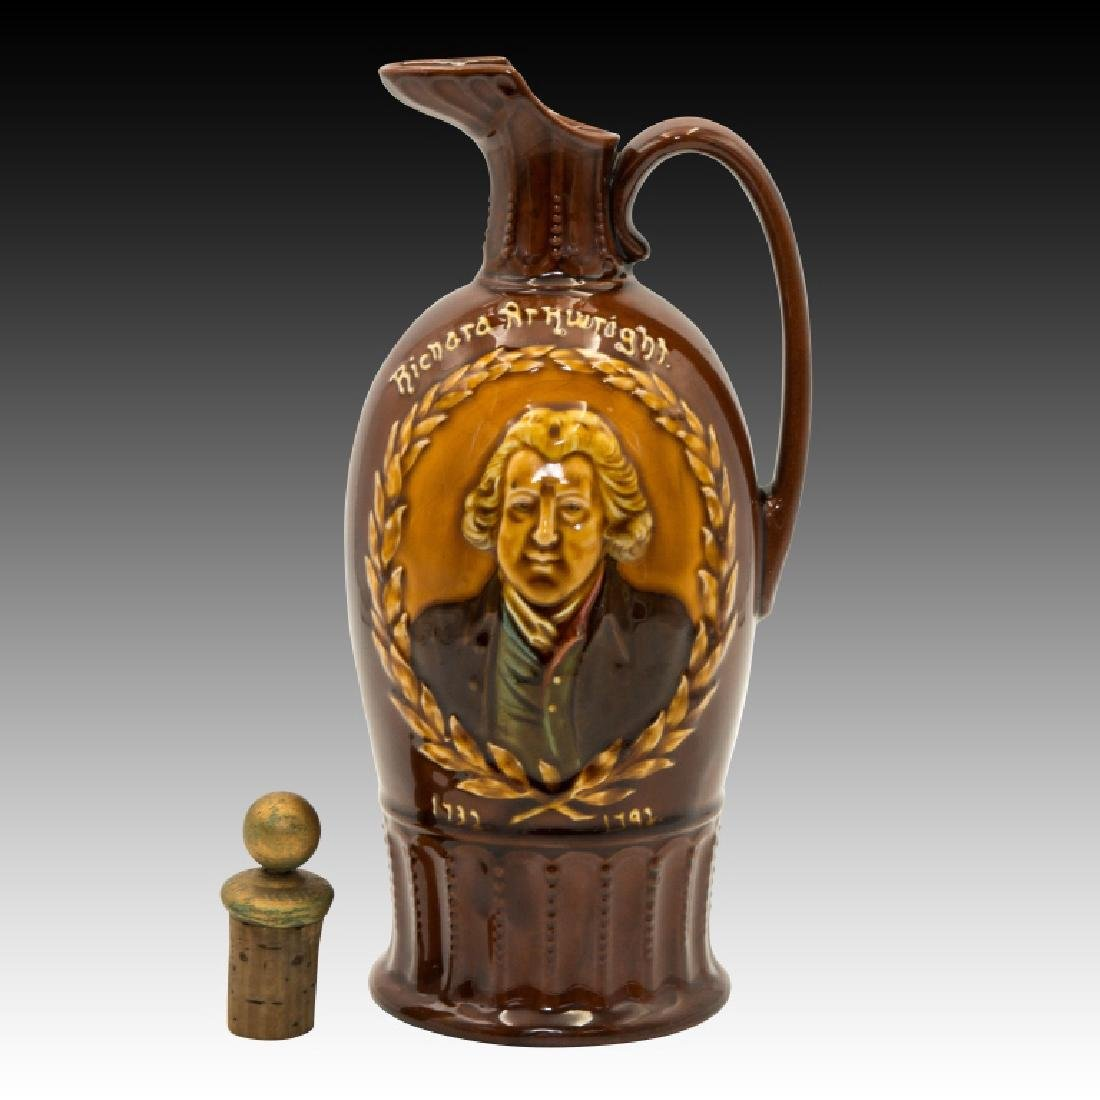 Doulton Kingsware Dewar's Richard Arkwright Flask - 5